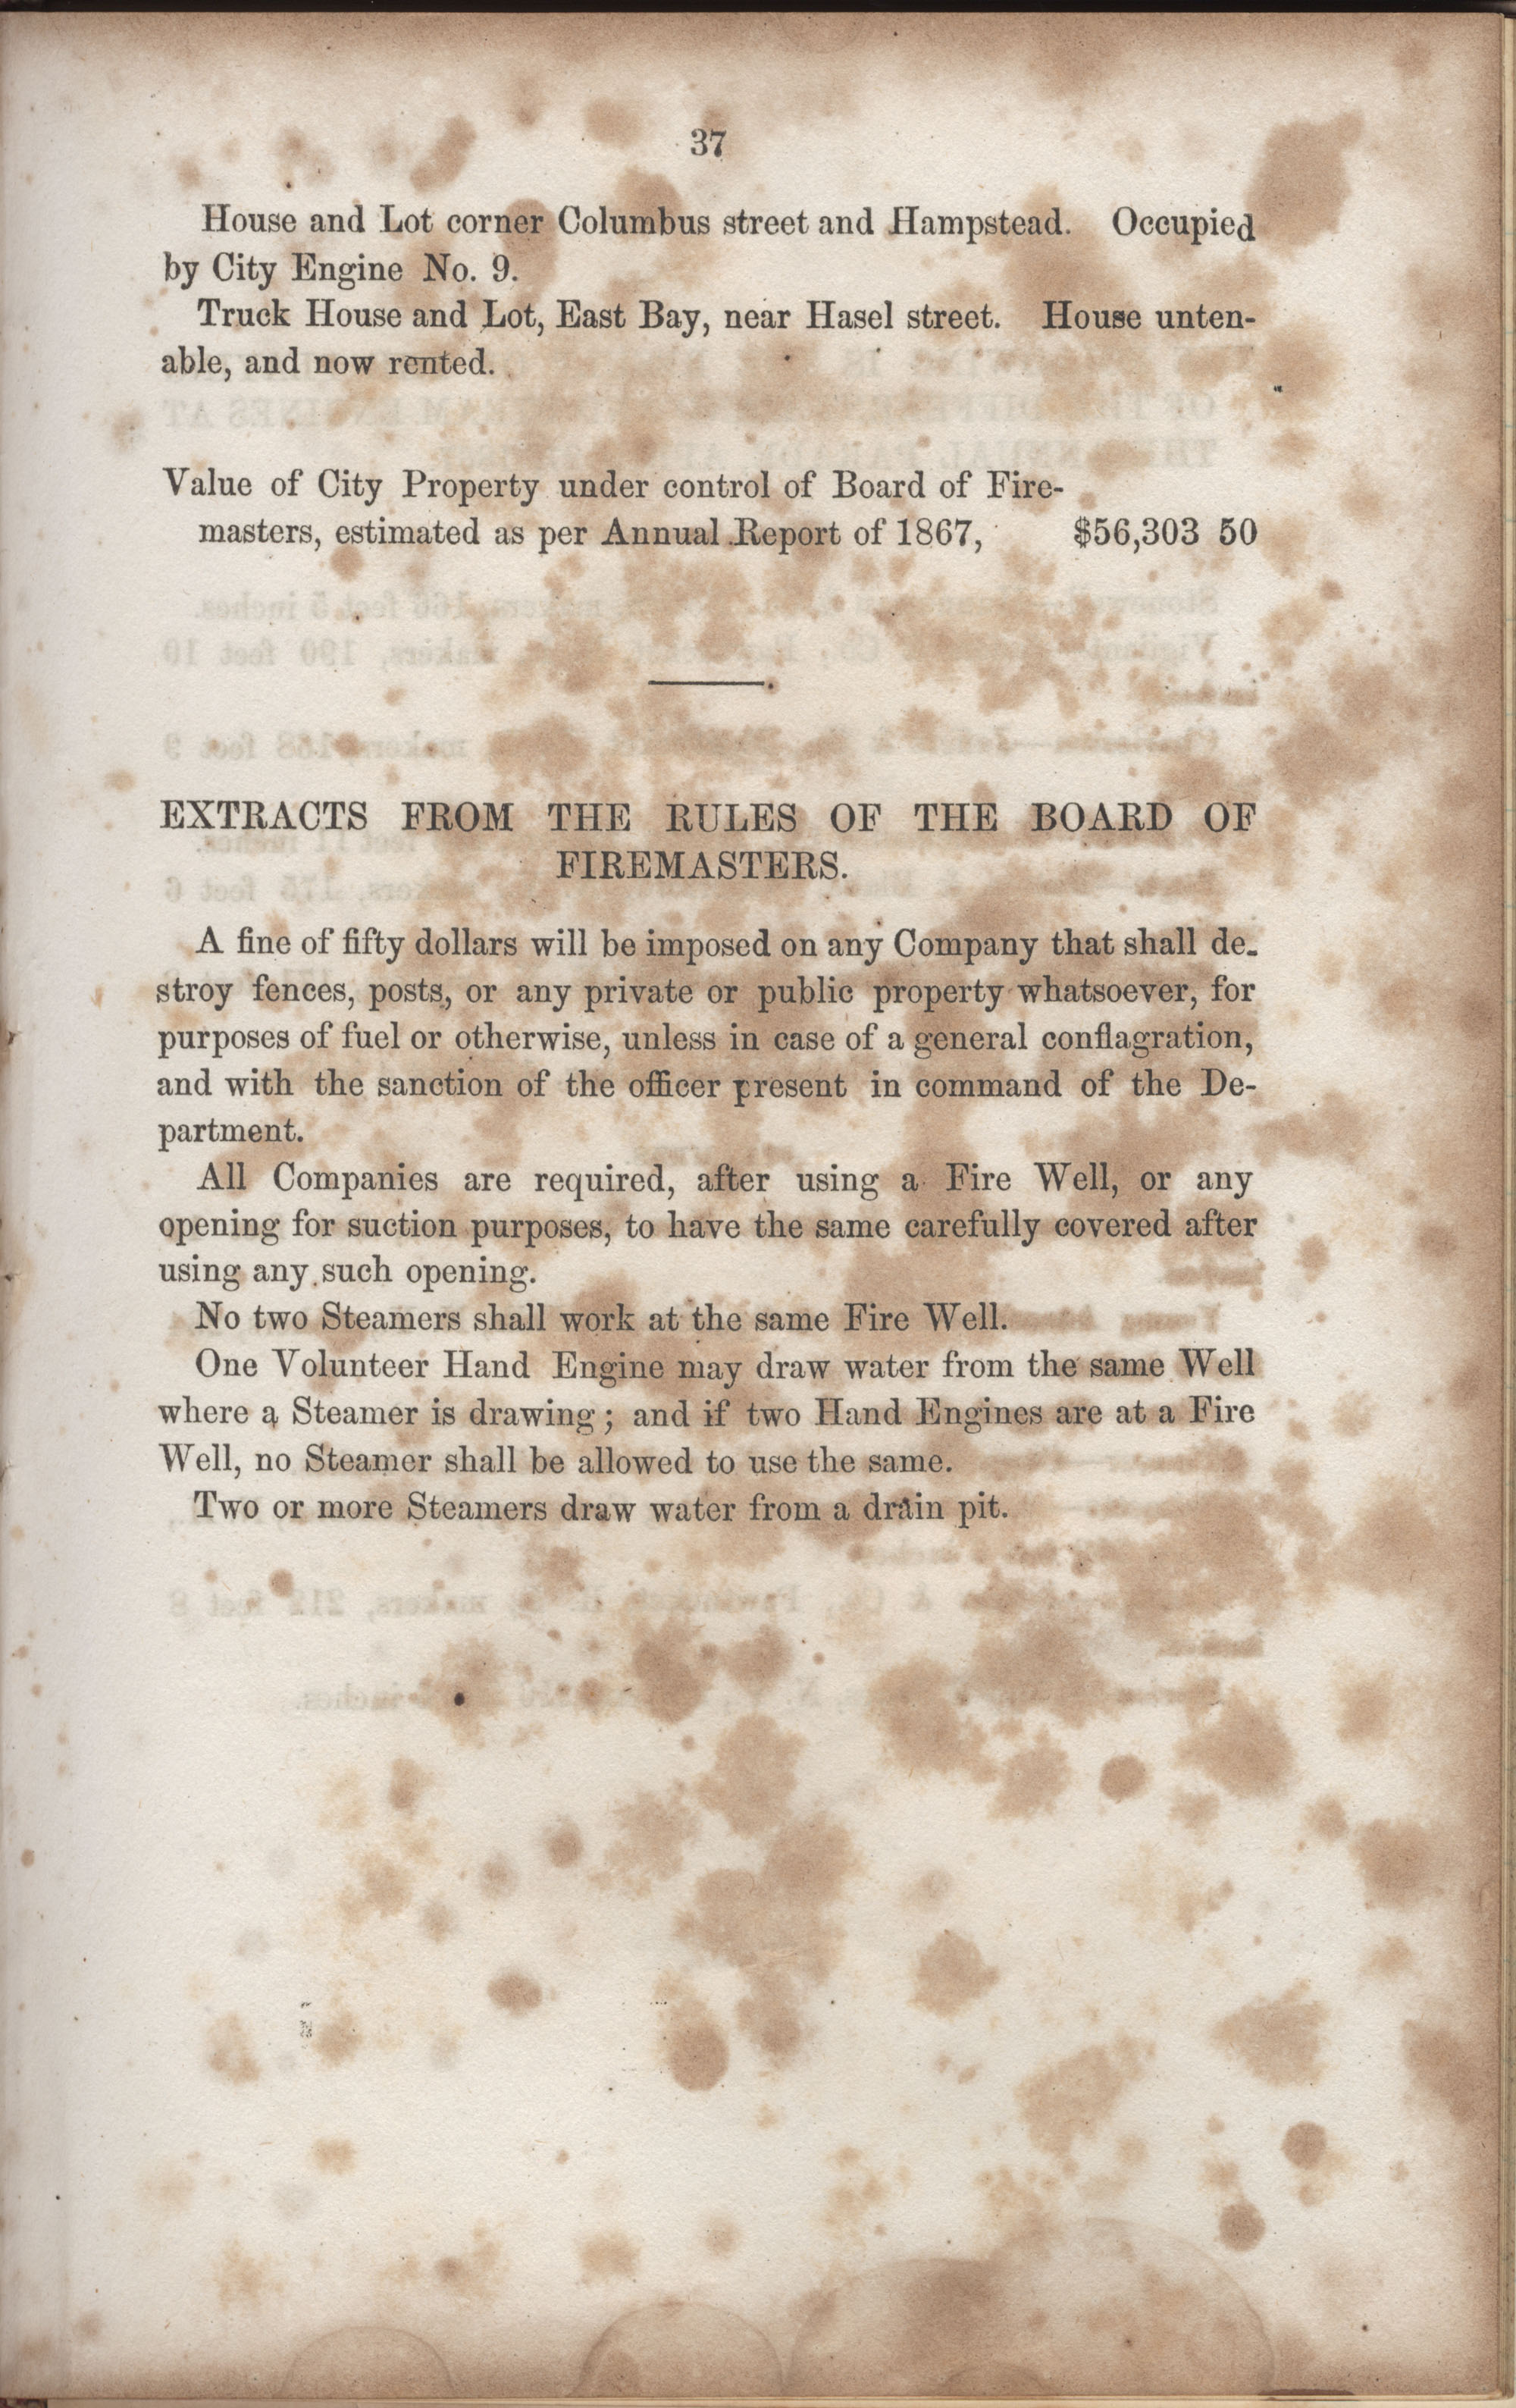 Annual Report of the Chief of the Fire Department of the City of Charleston, page 179